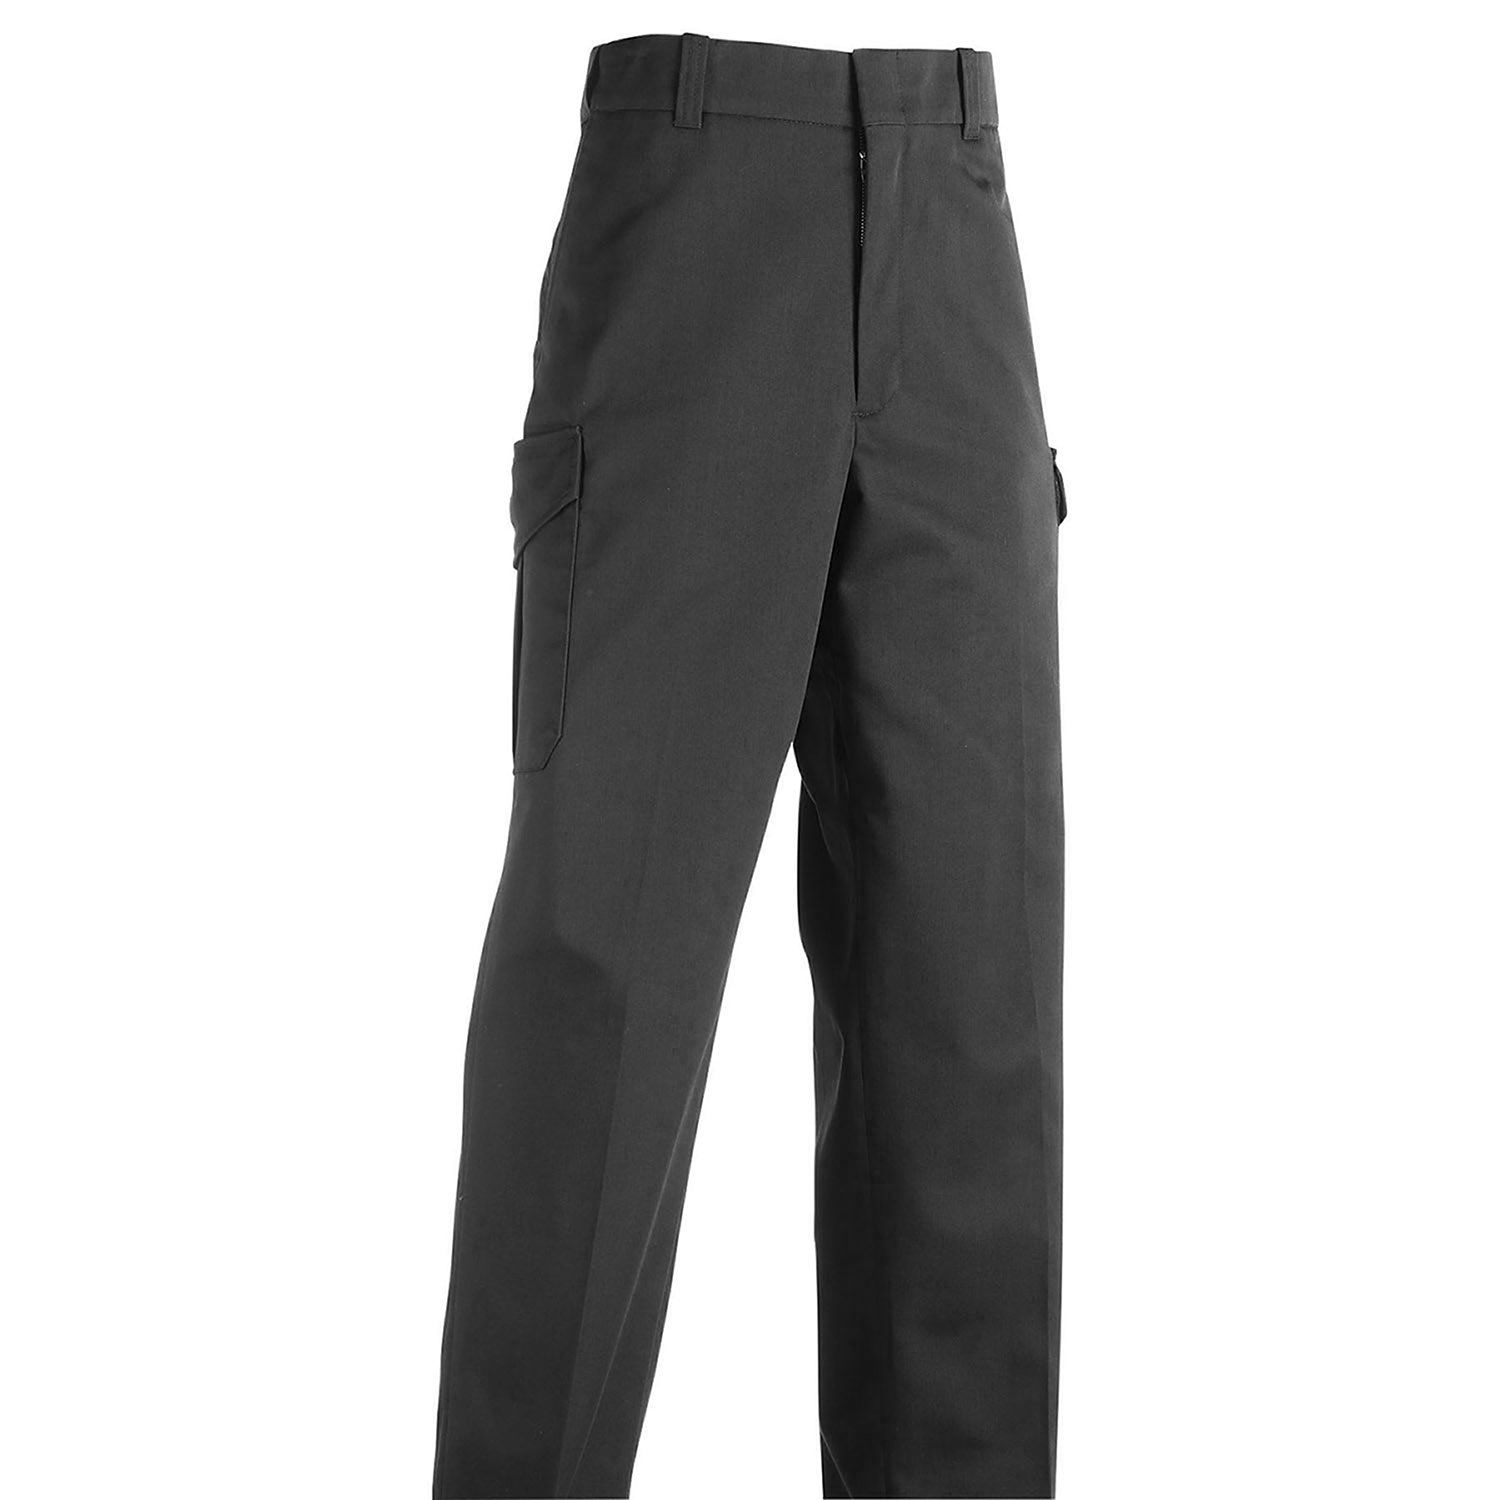 Horace Small New Dimension Plus Six Pocket Cargo Trousers